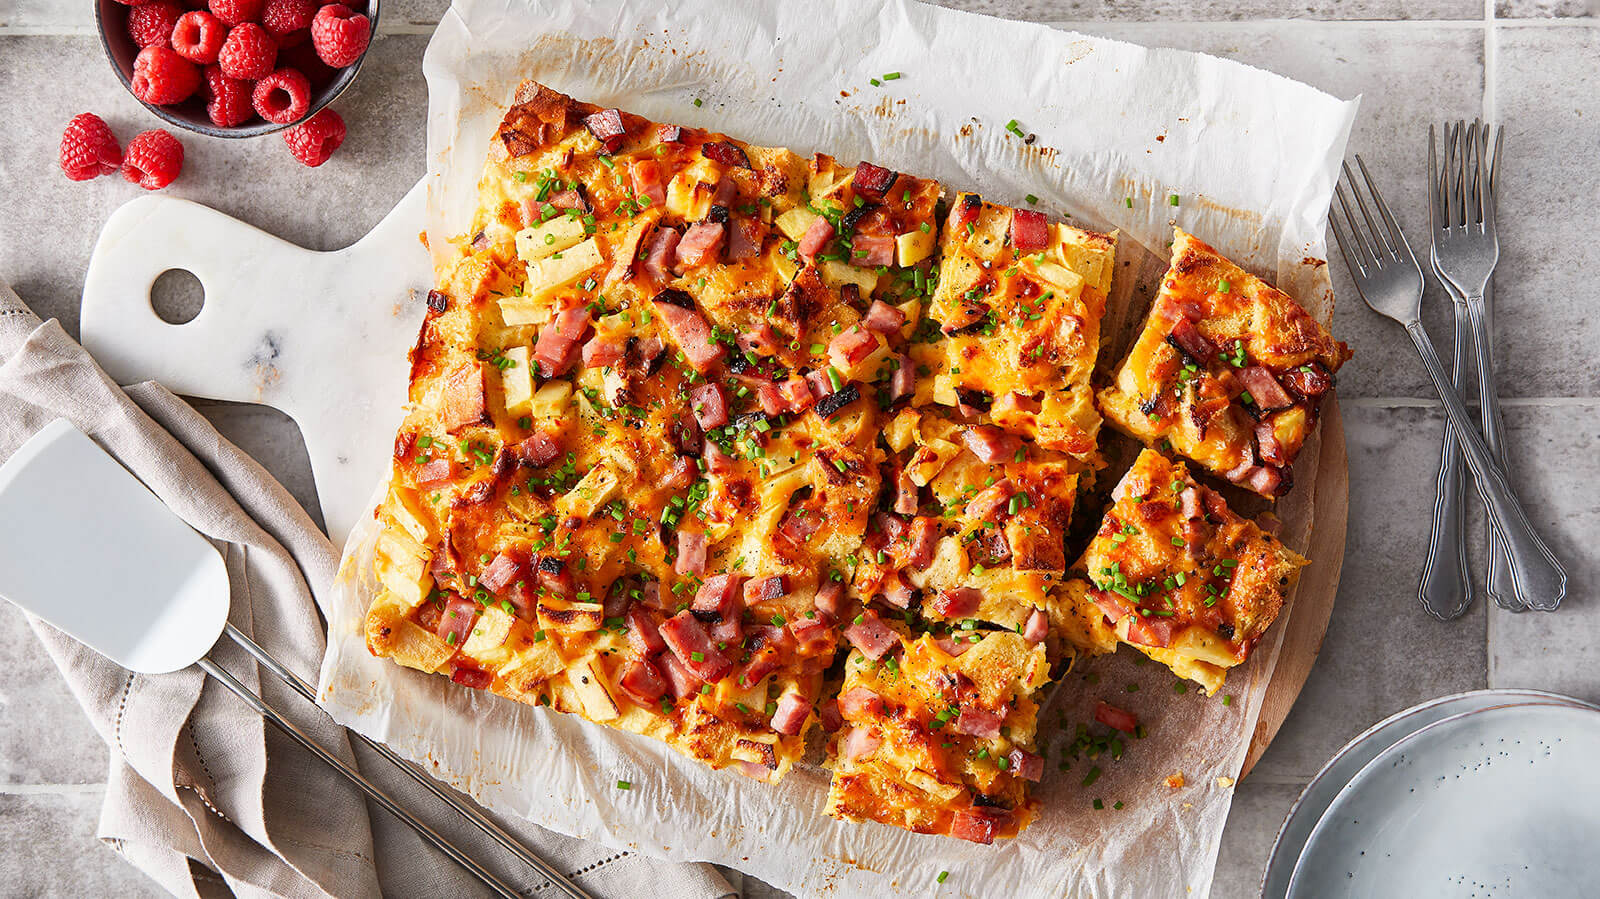 Ham and egg breakfast strata